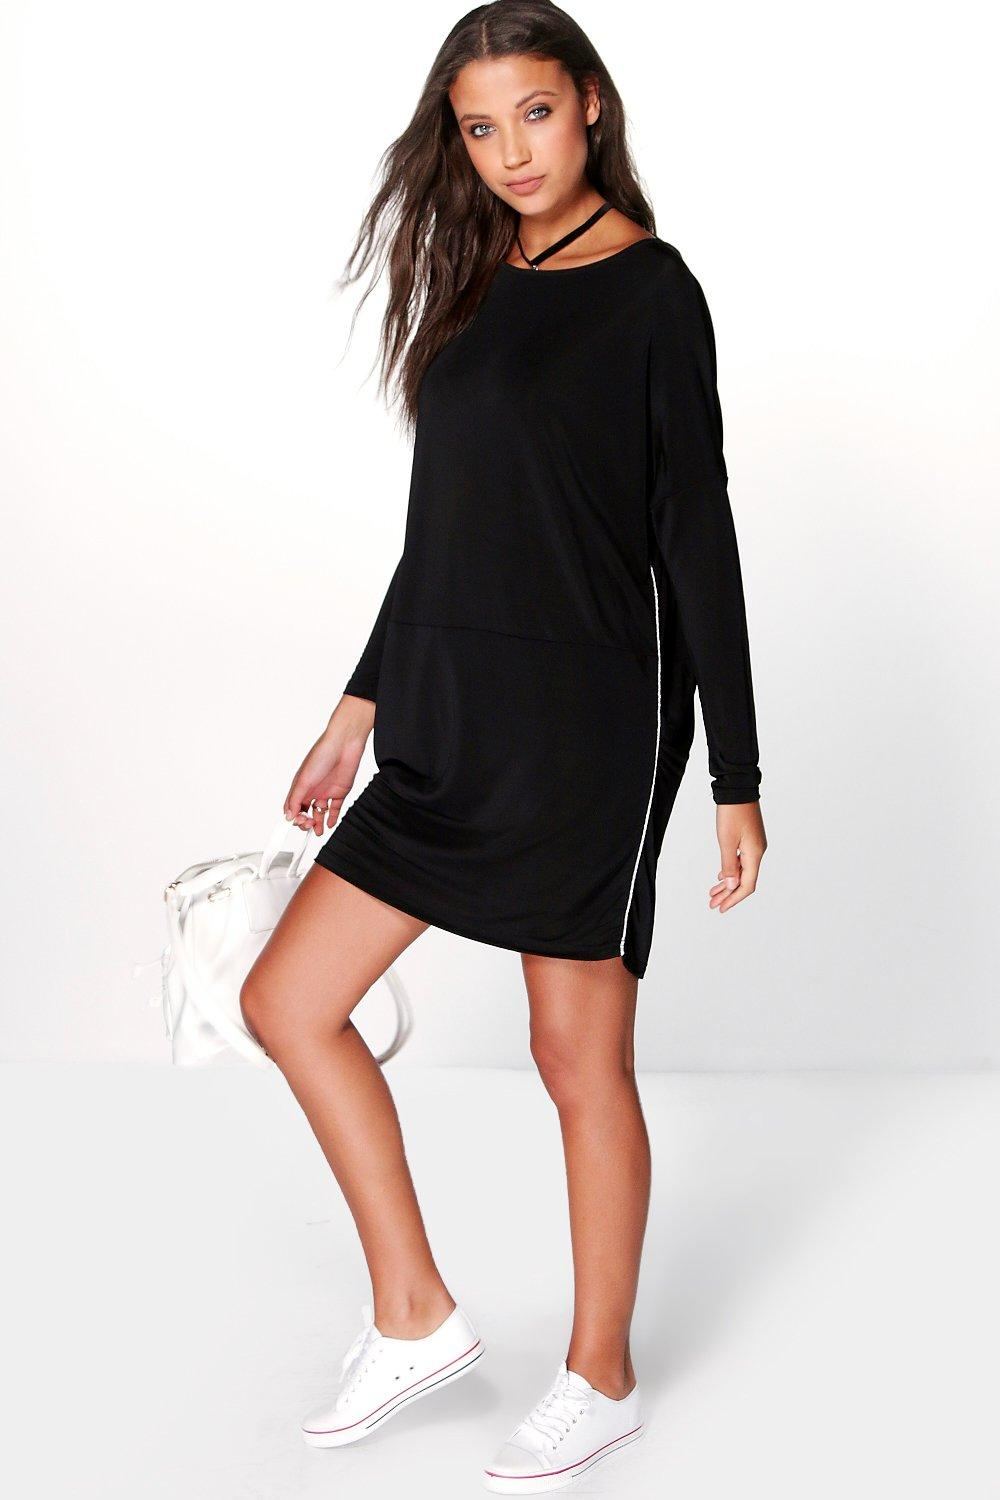 style 369 dress jumpers